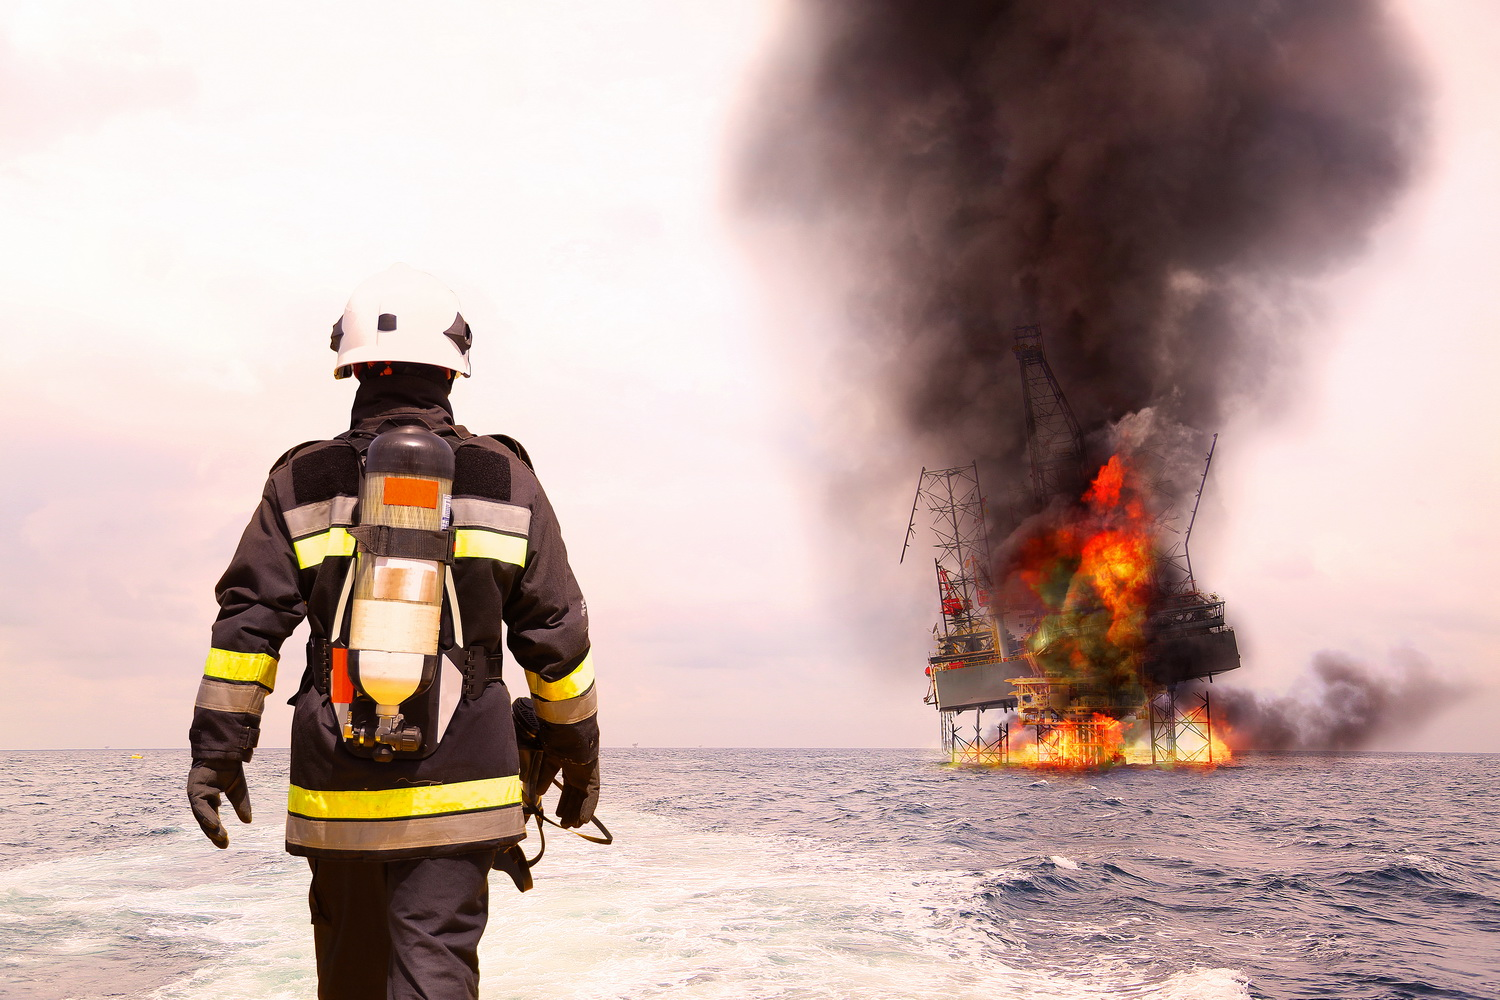 Course hse Health Safety Environmental Security Petroleum Oil and Gaz Eurotech Training Consultancy Recruitment Fadi Jawad